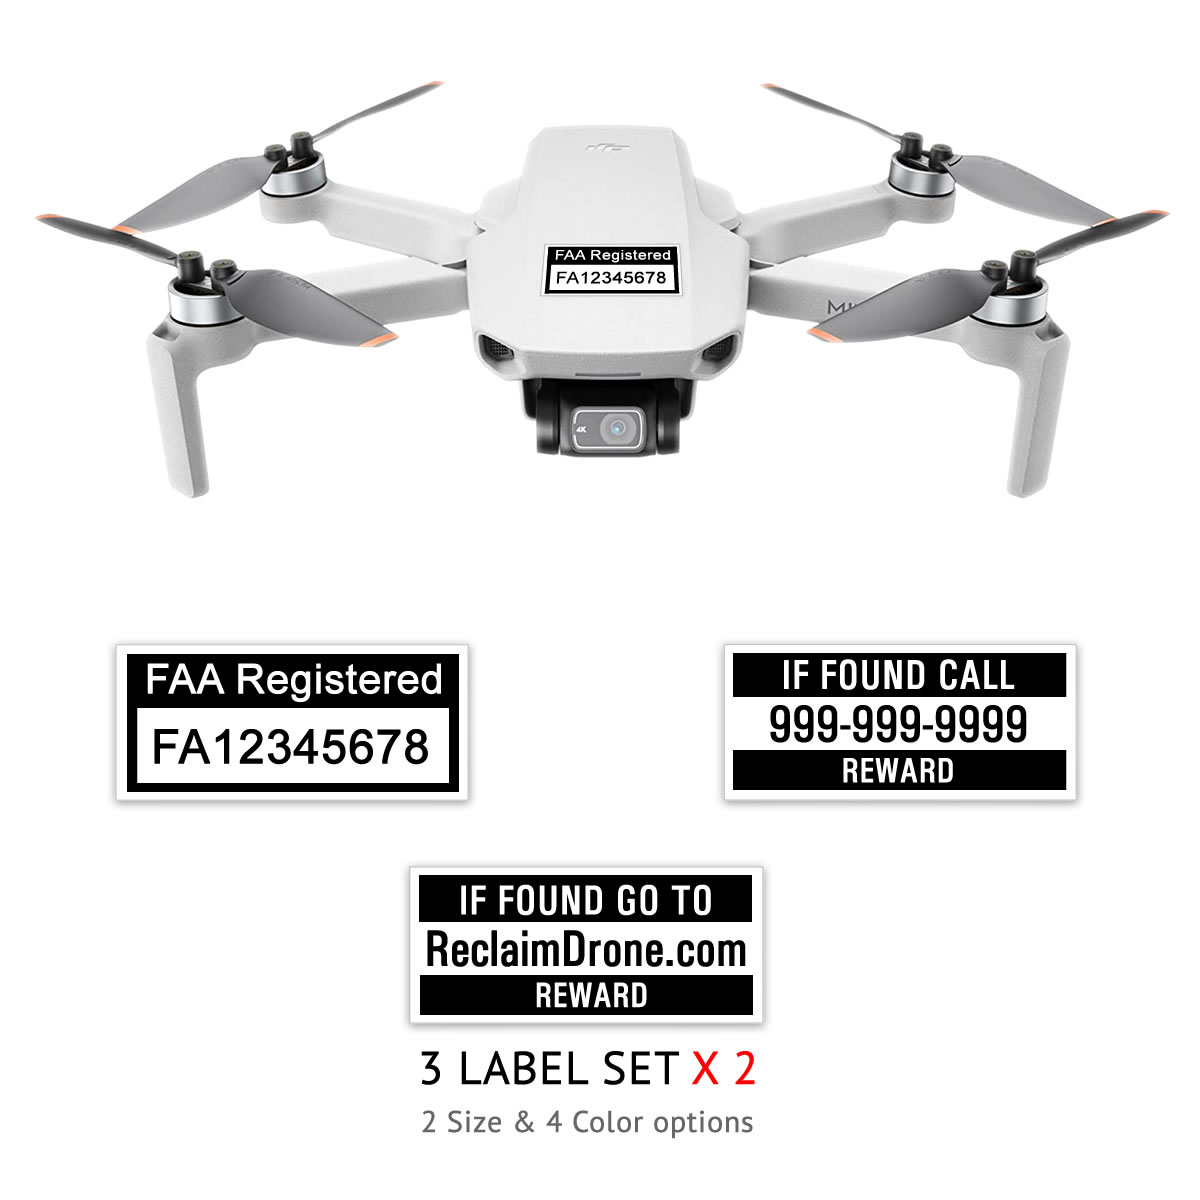 DJI Mini 2 – FAA Registration Labels, FAA and Phone number in black on white background